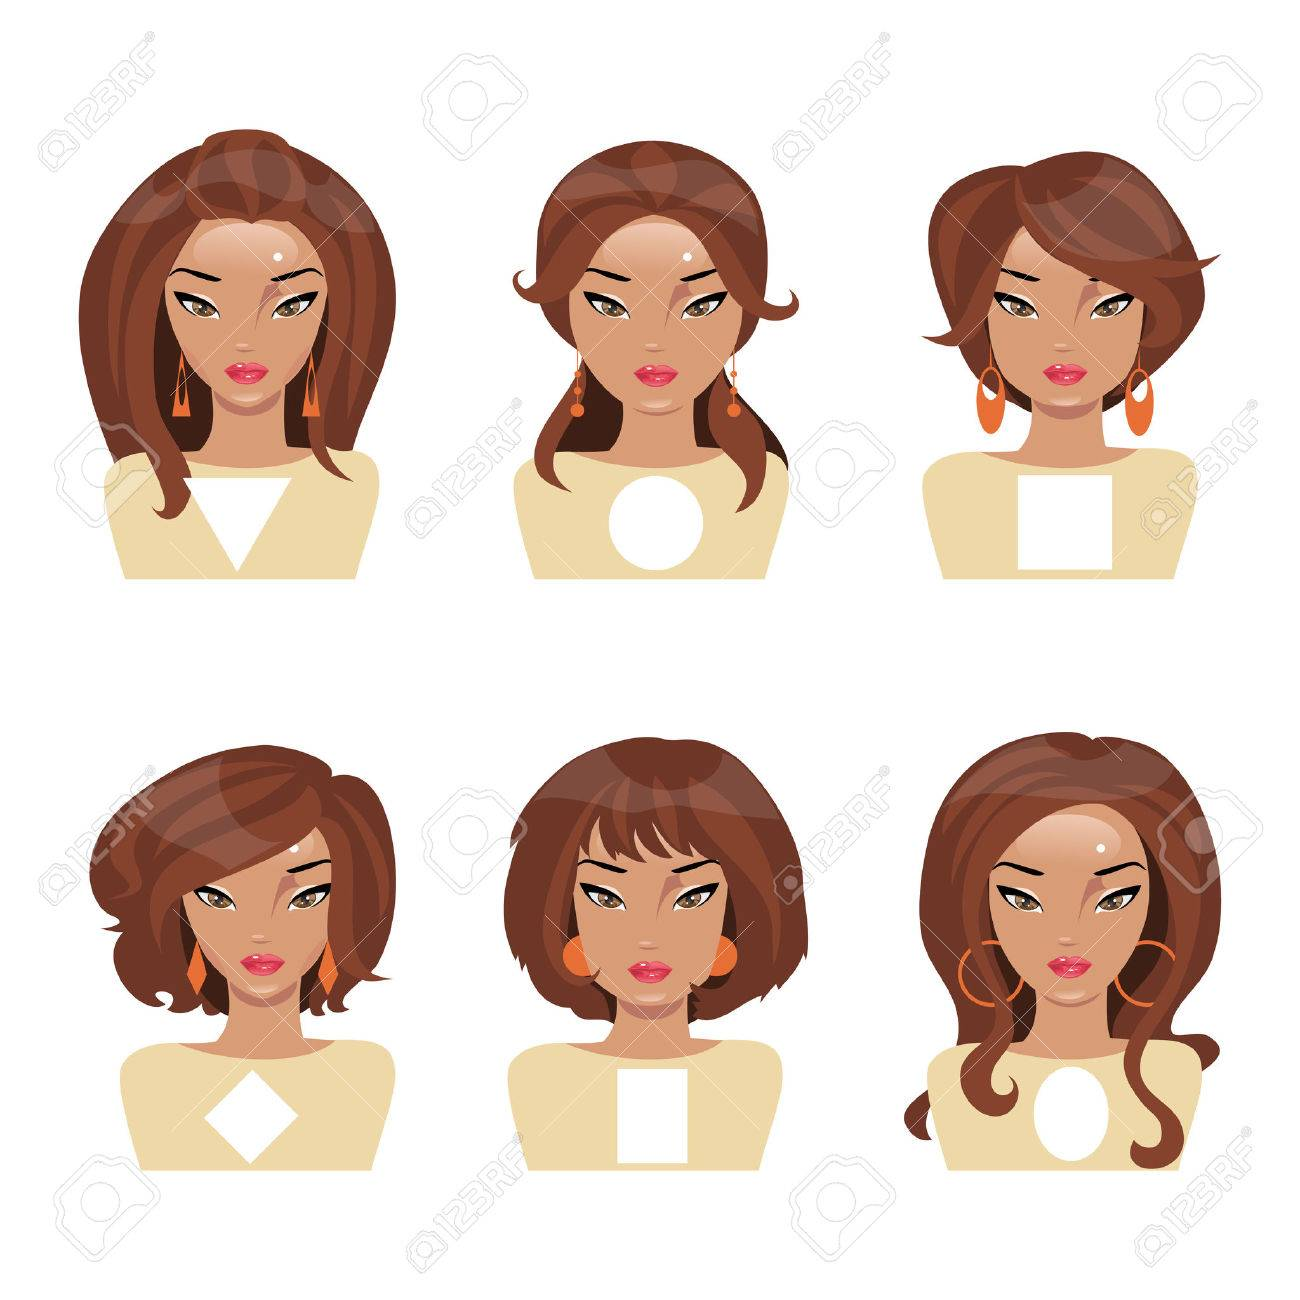 Different face shapes and matching hair and earrings royalty free different face shapes and matching hair and earrings stock vector 48196771 urmus Image collections